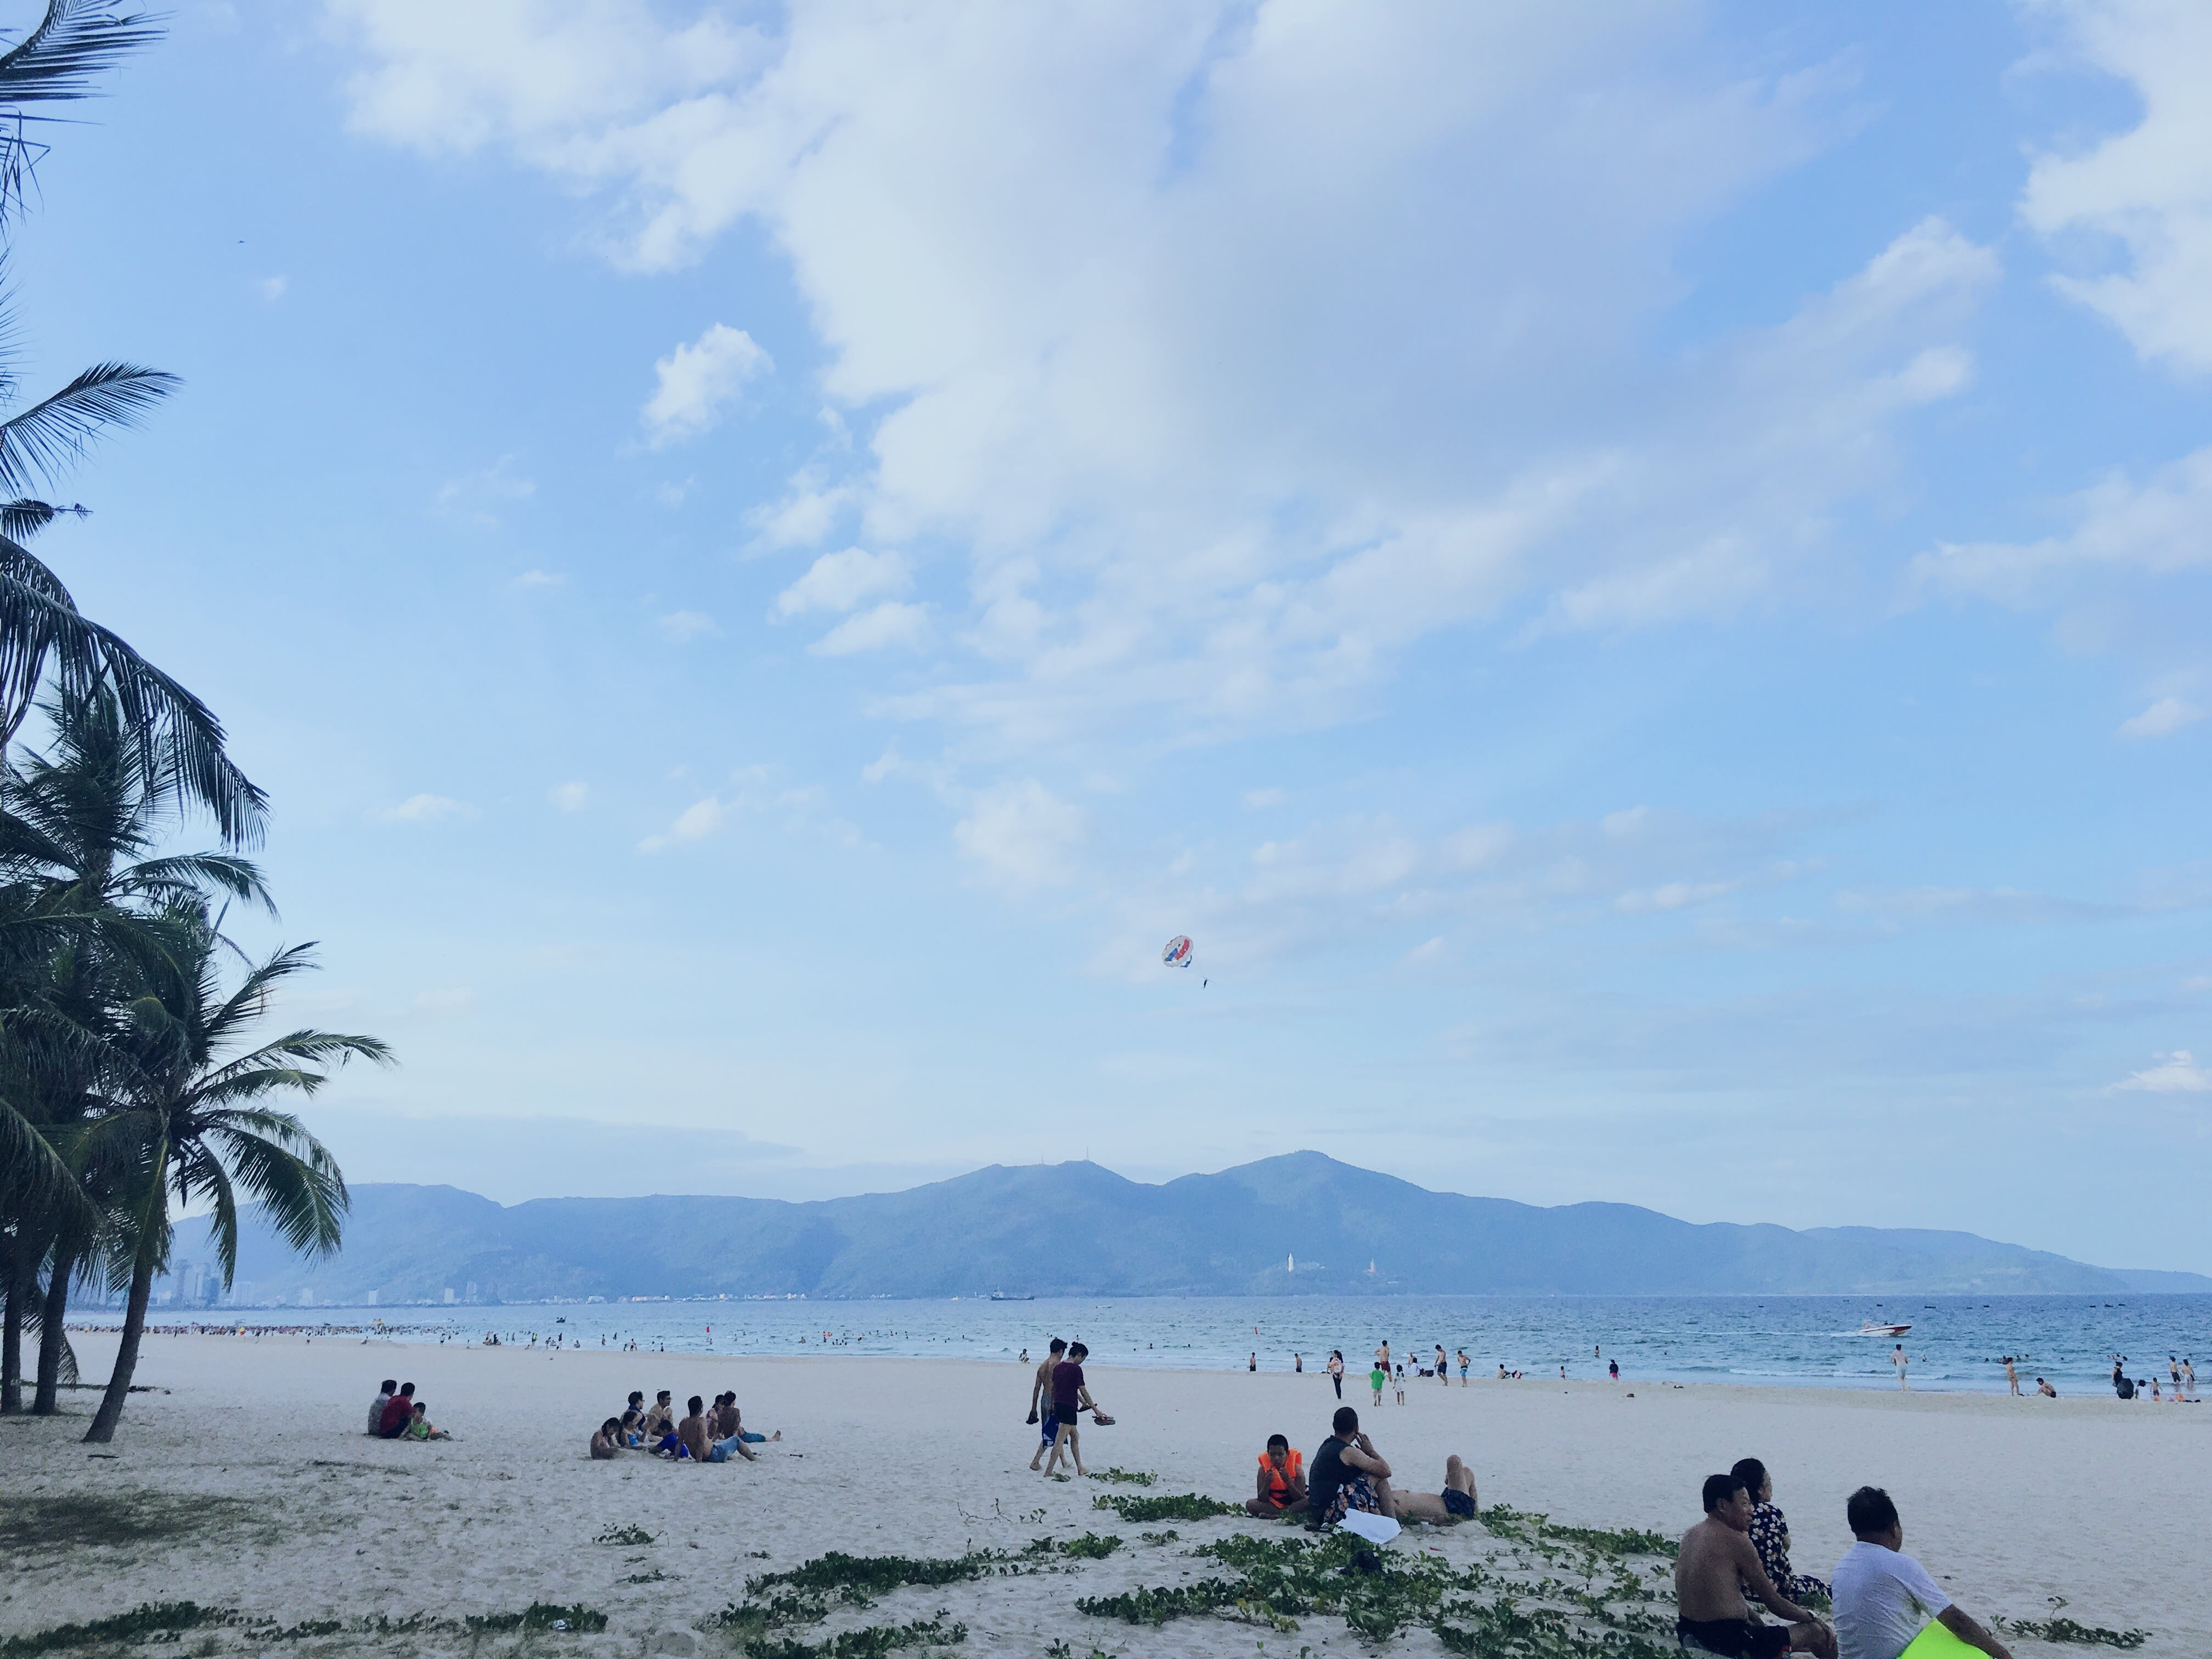 Top 7 best attractions in Danang that any backpackers should not miss out 2